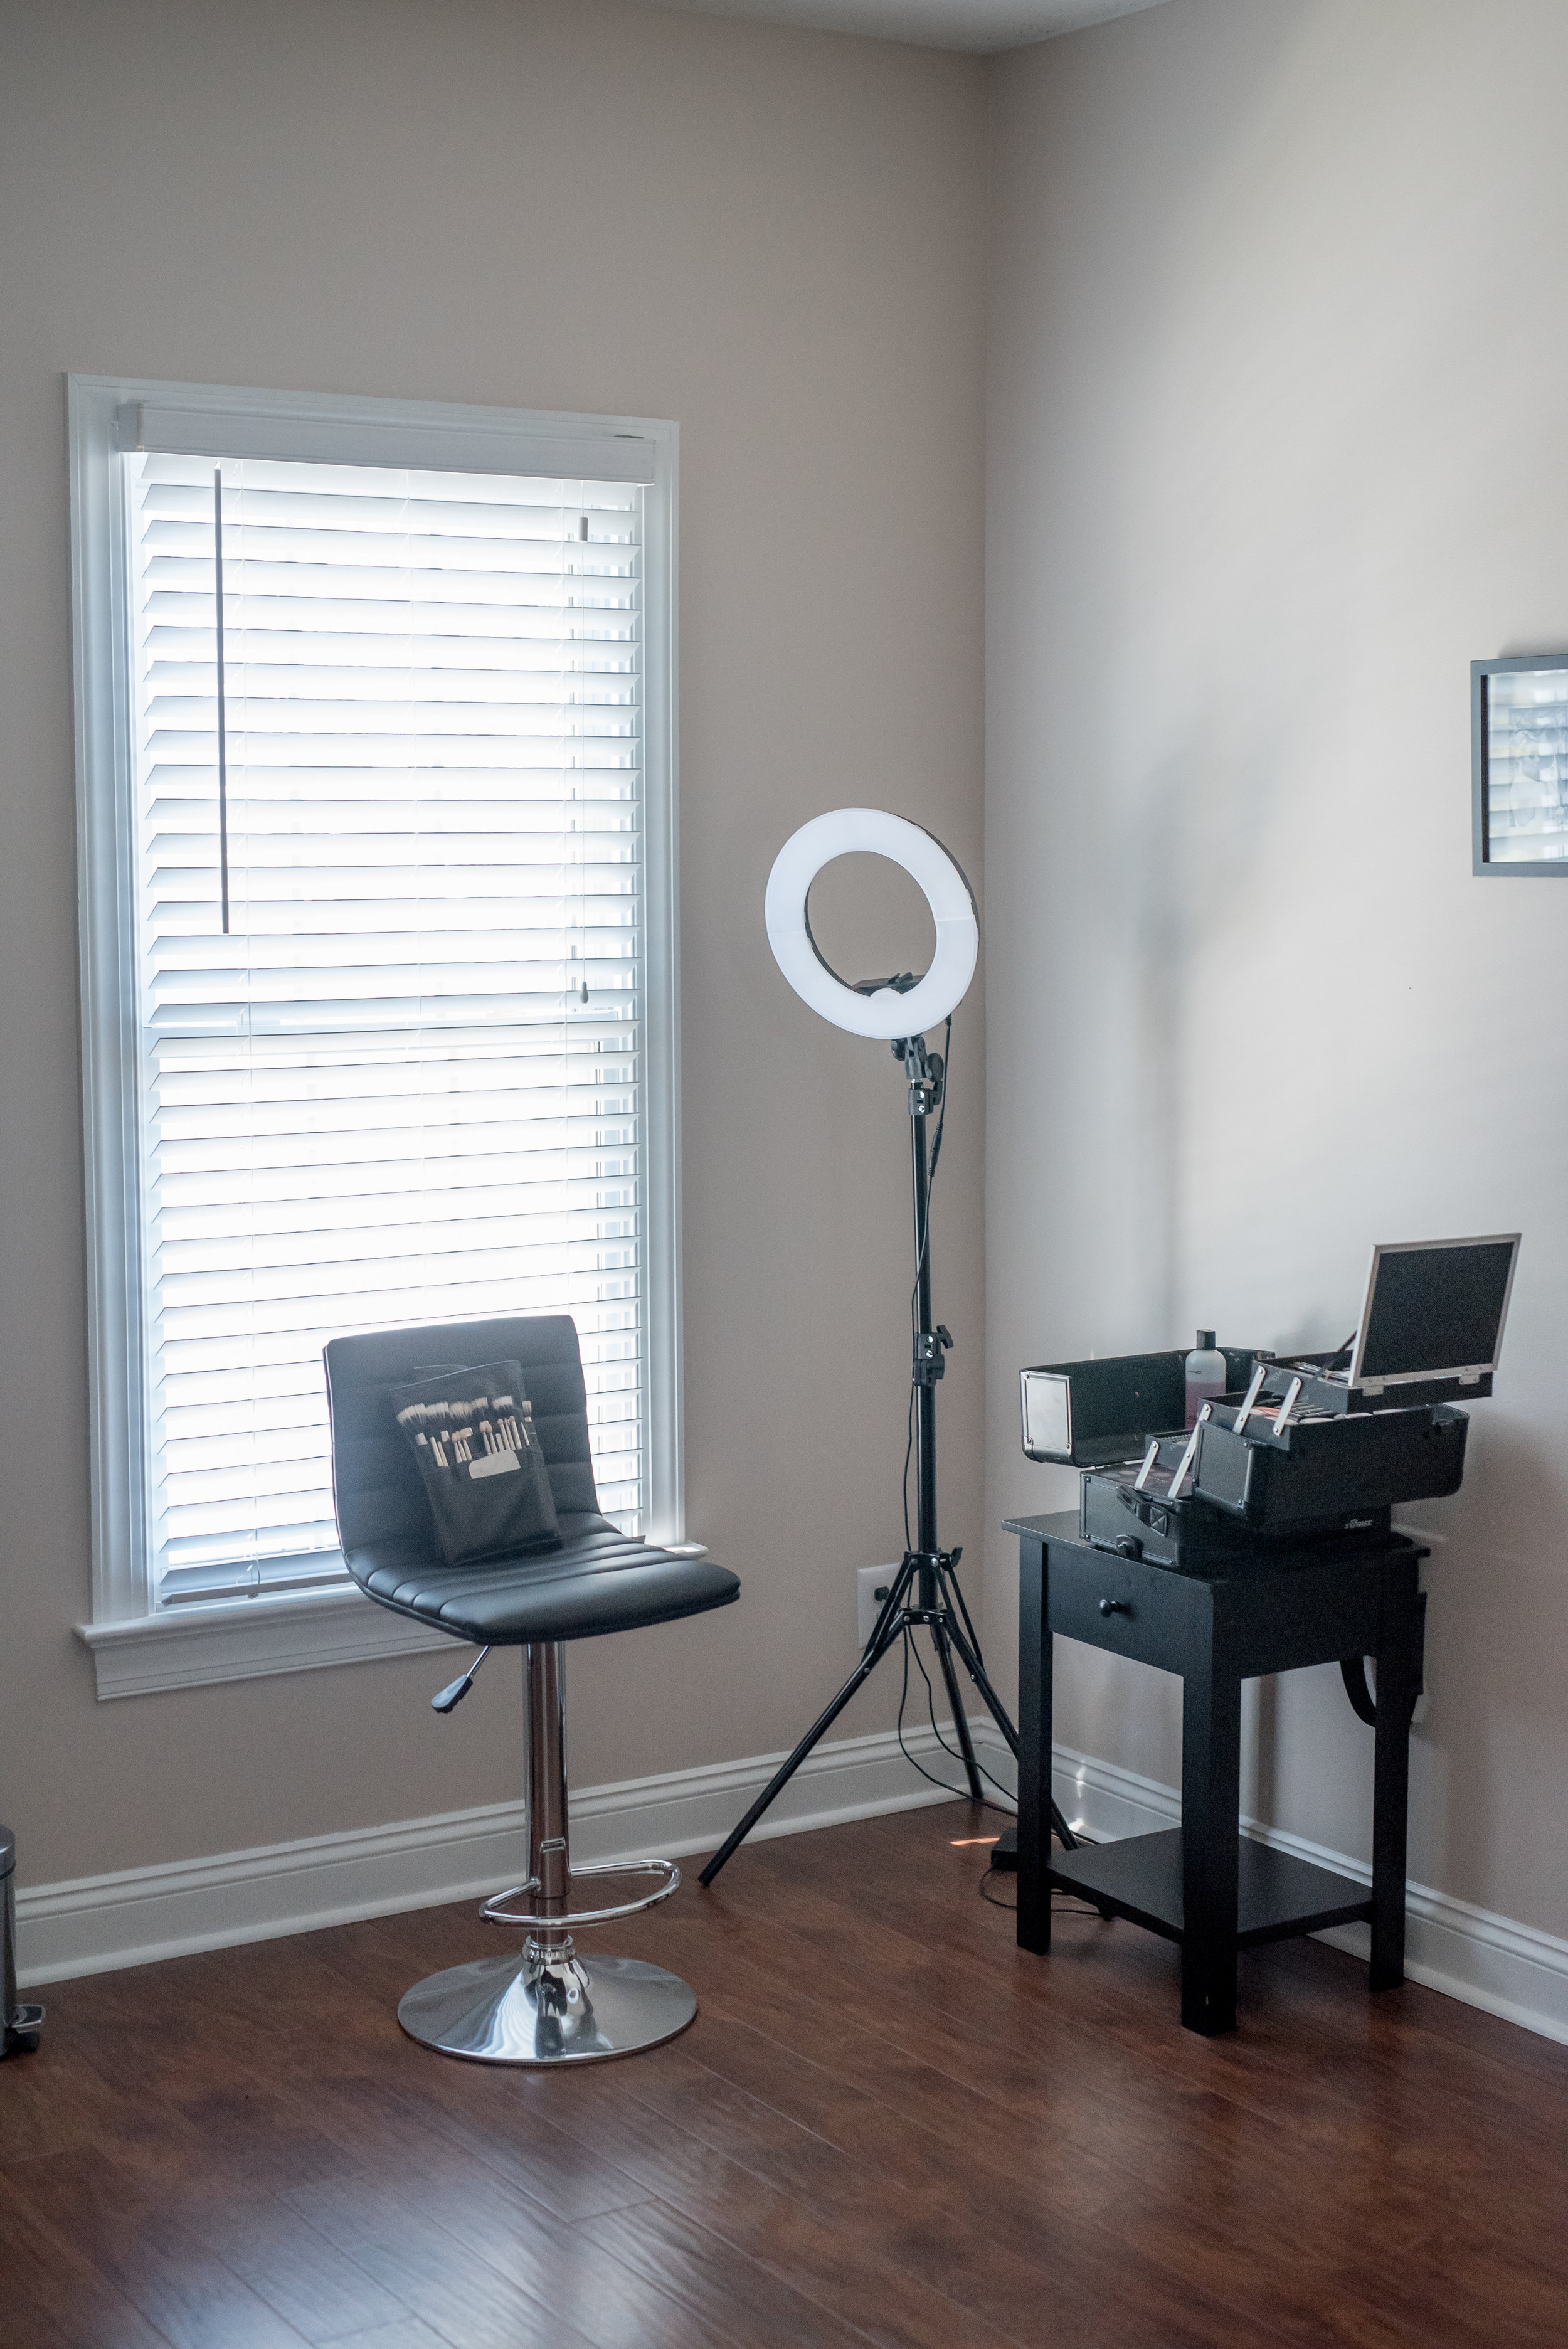 the studio - BY APPOINTMENT ONLYWyndhurstLynchburg, Virginia 24502 USA(434) 944-3324chantay@inyourfacemakeupart.com